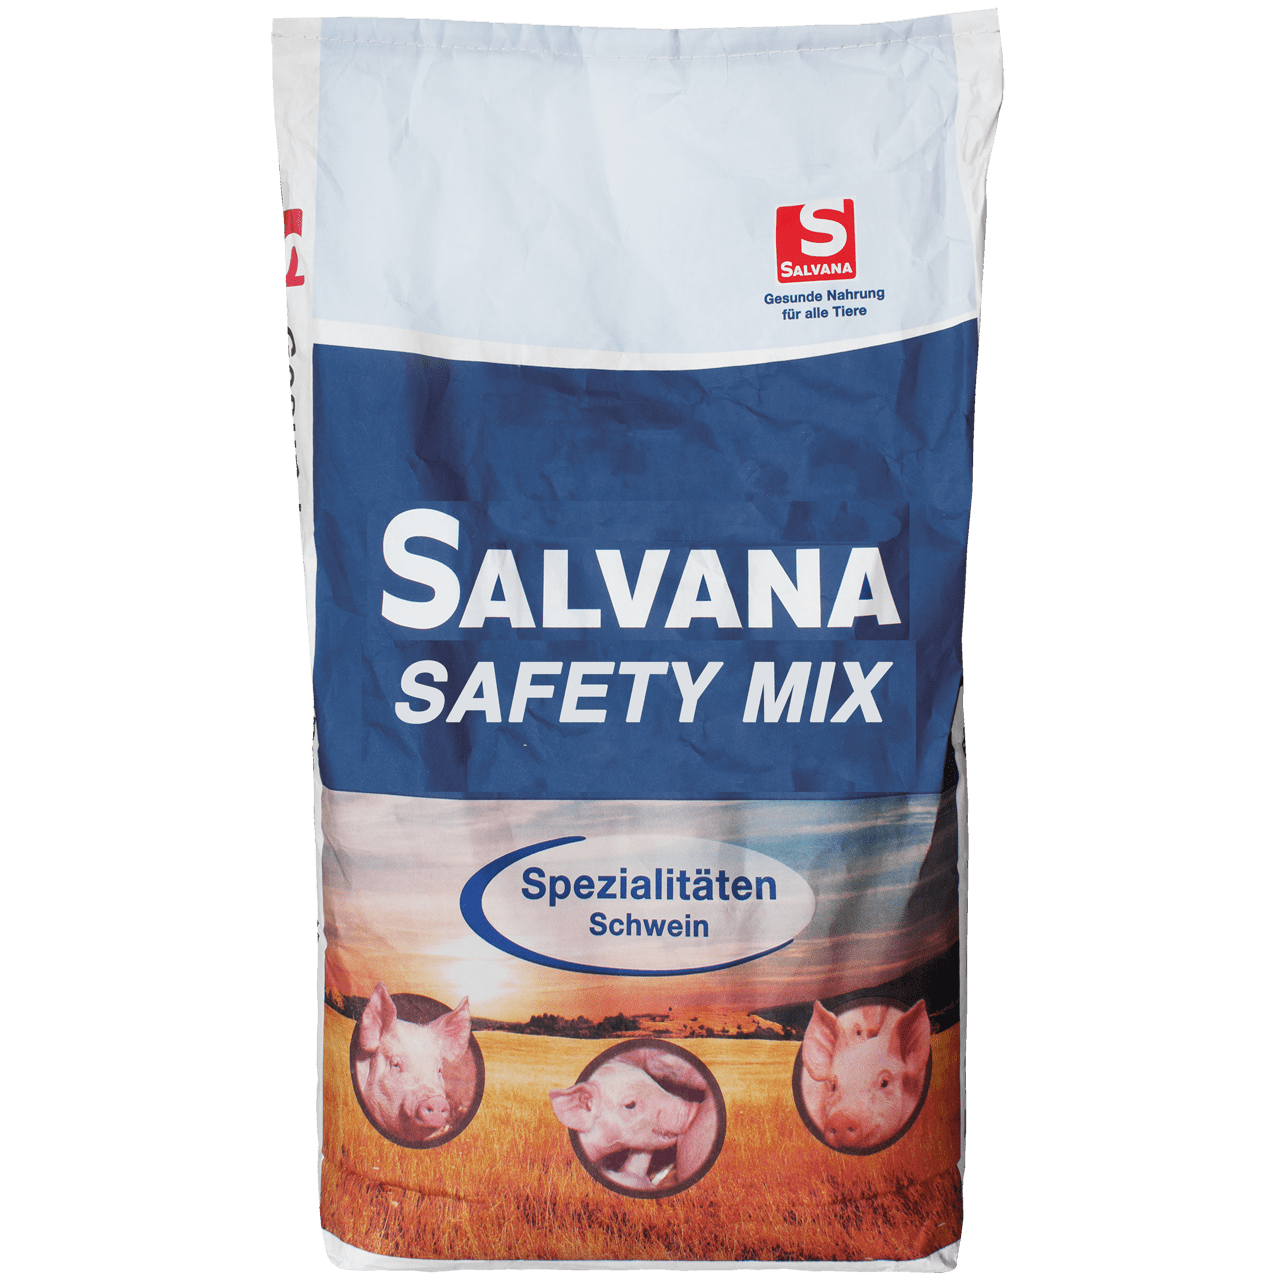 SALVANA SAFETY MIX